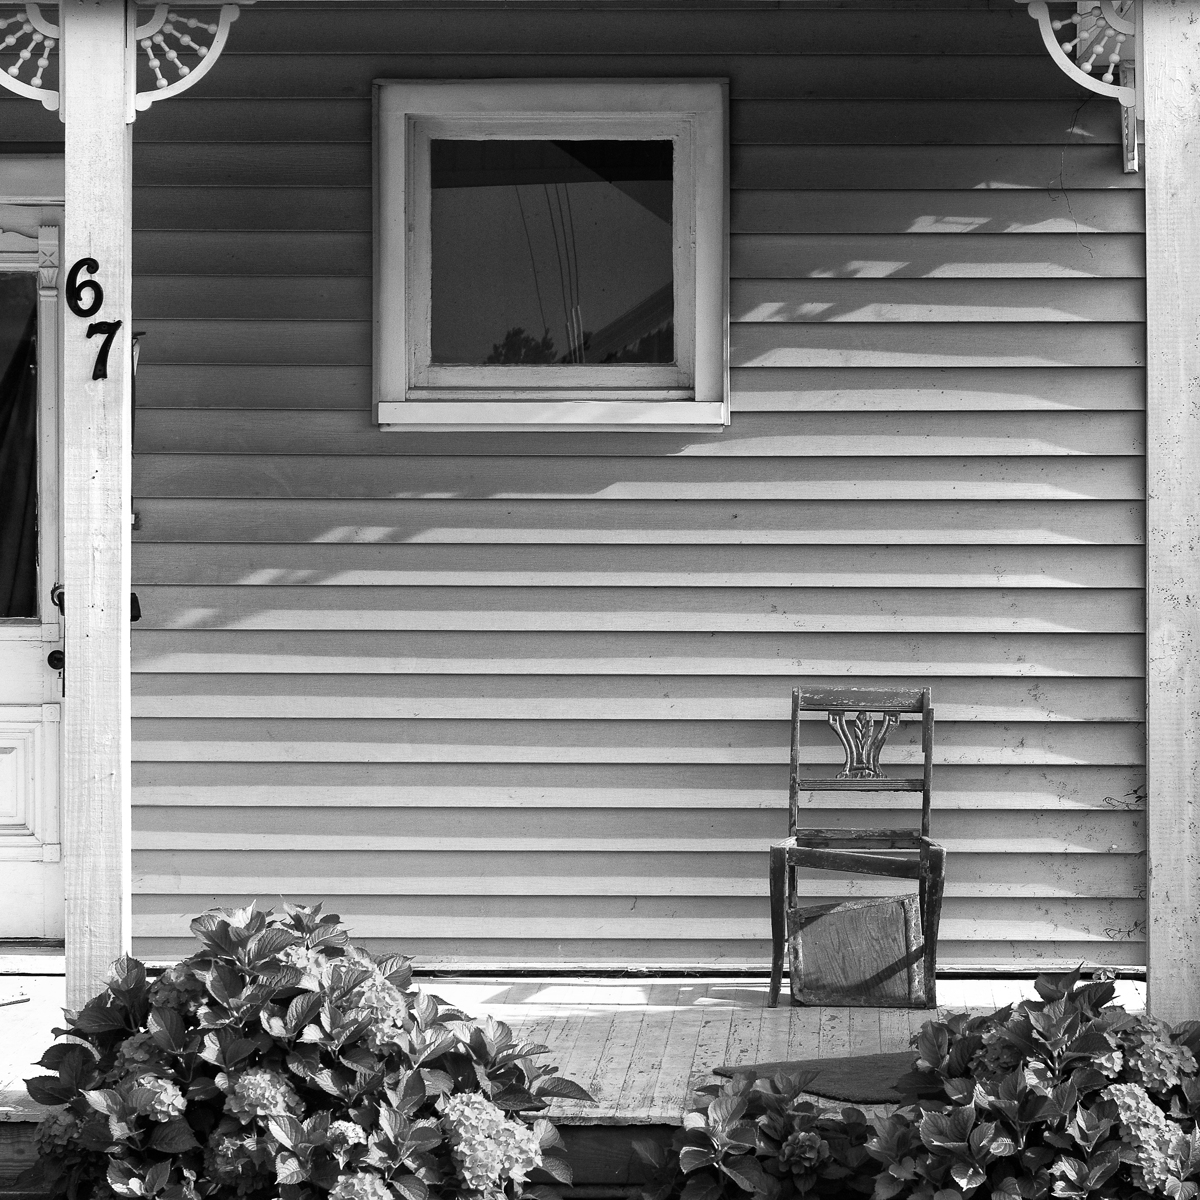 Waiting, Asheville, NC, 2013 (large view)